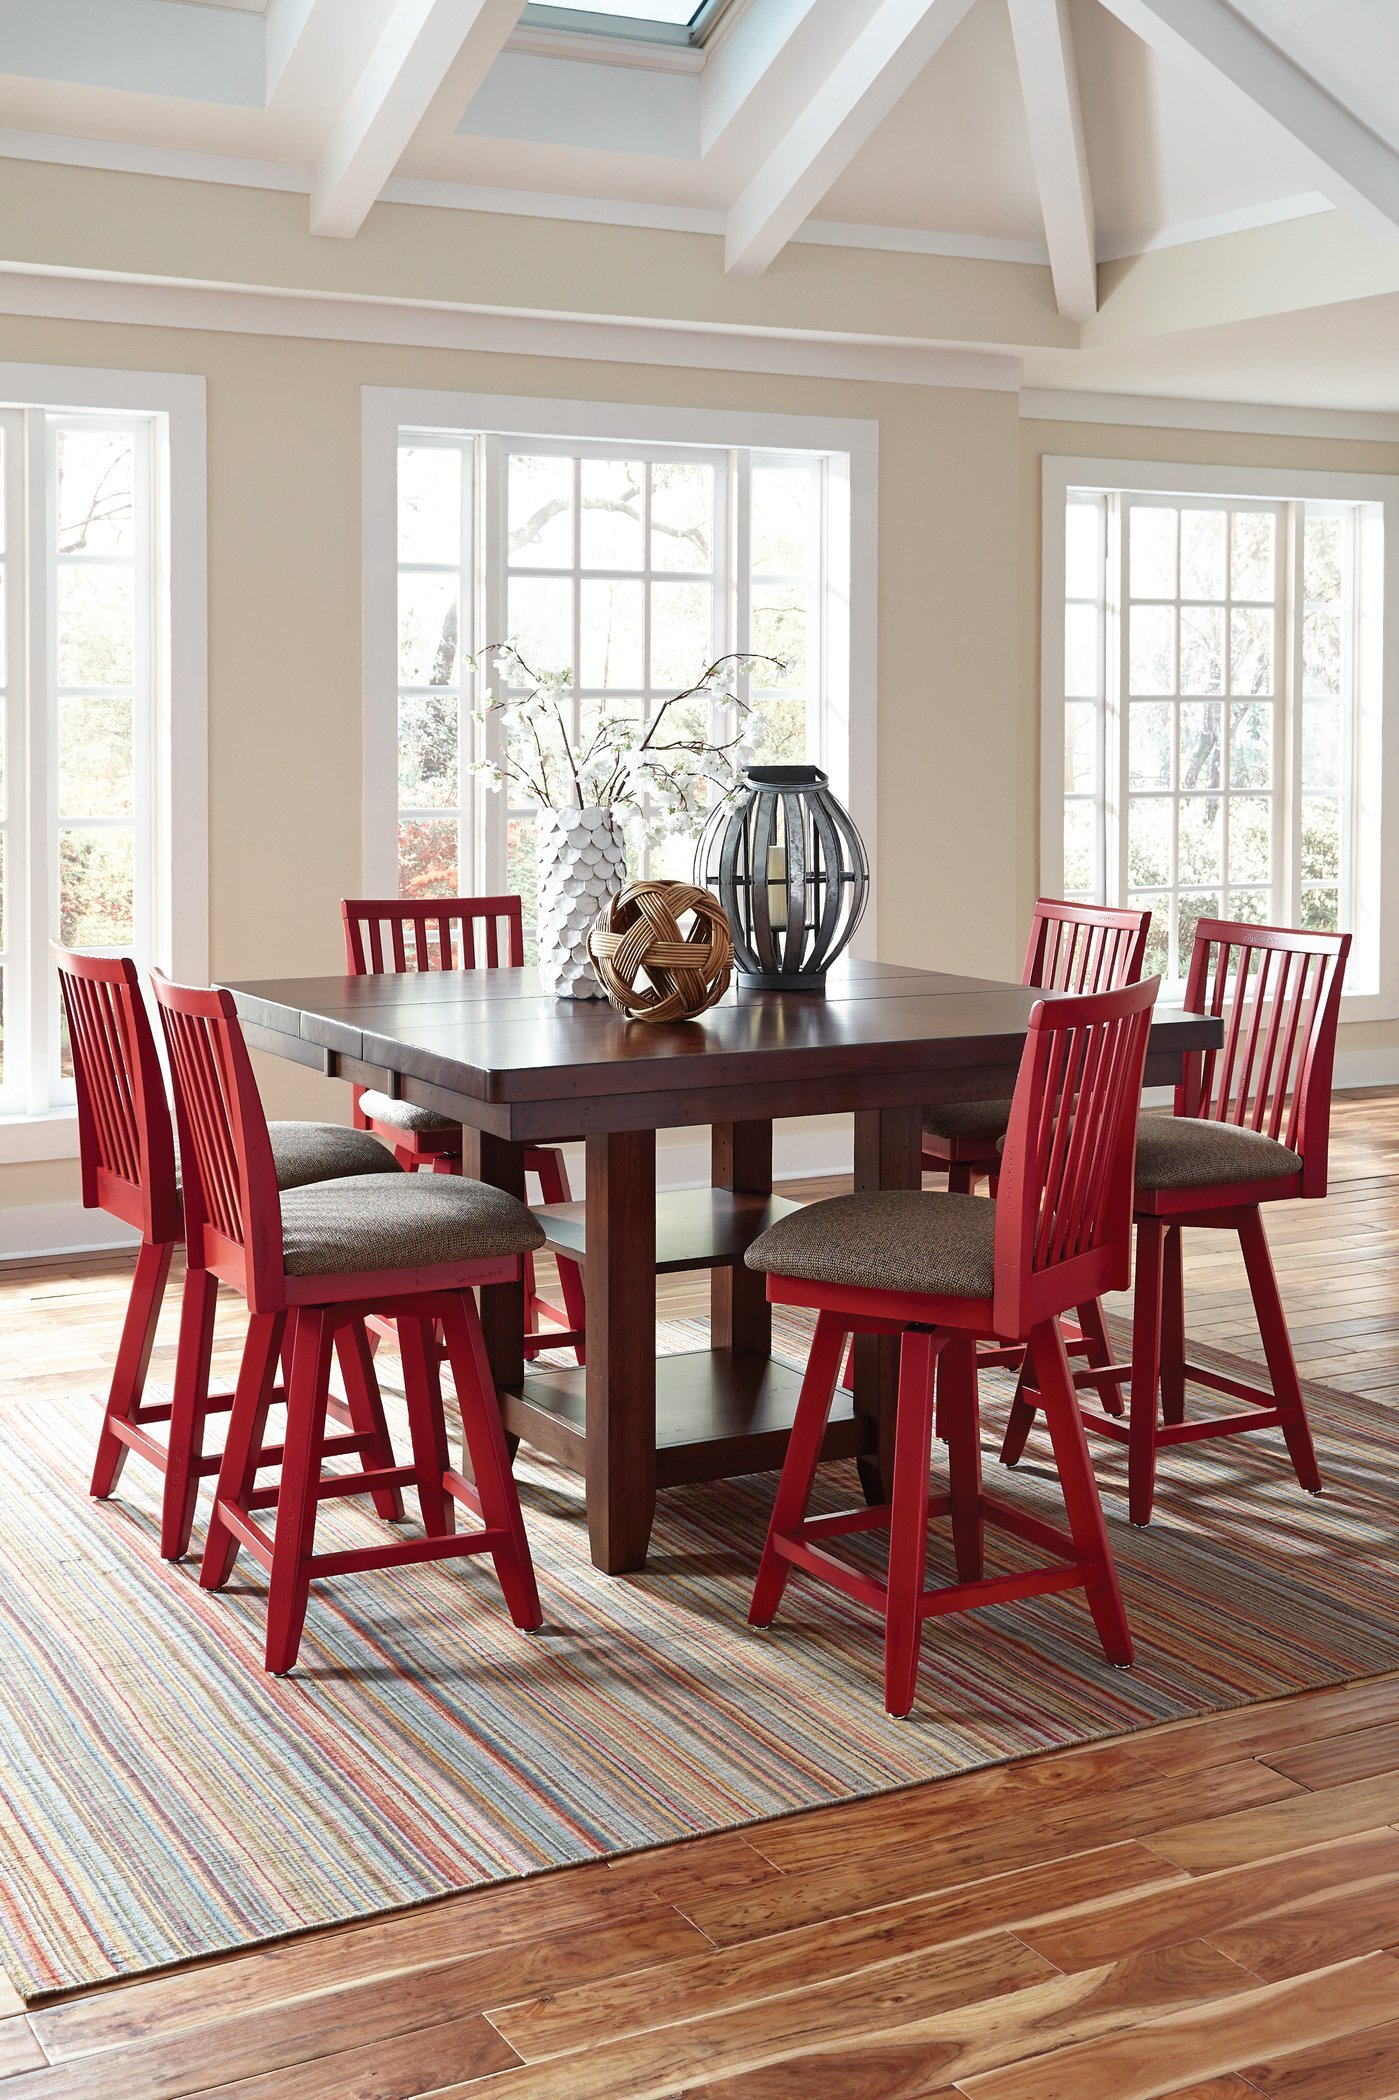 real t customizable truffle la finishes all view wood s furniture selection of an expansive louise lafayette